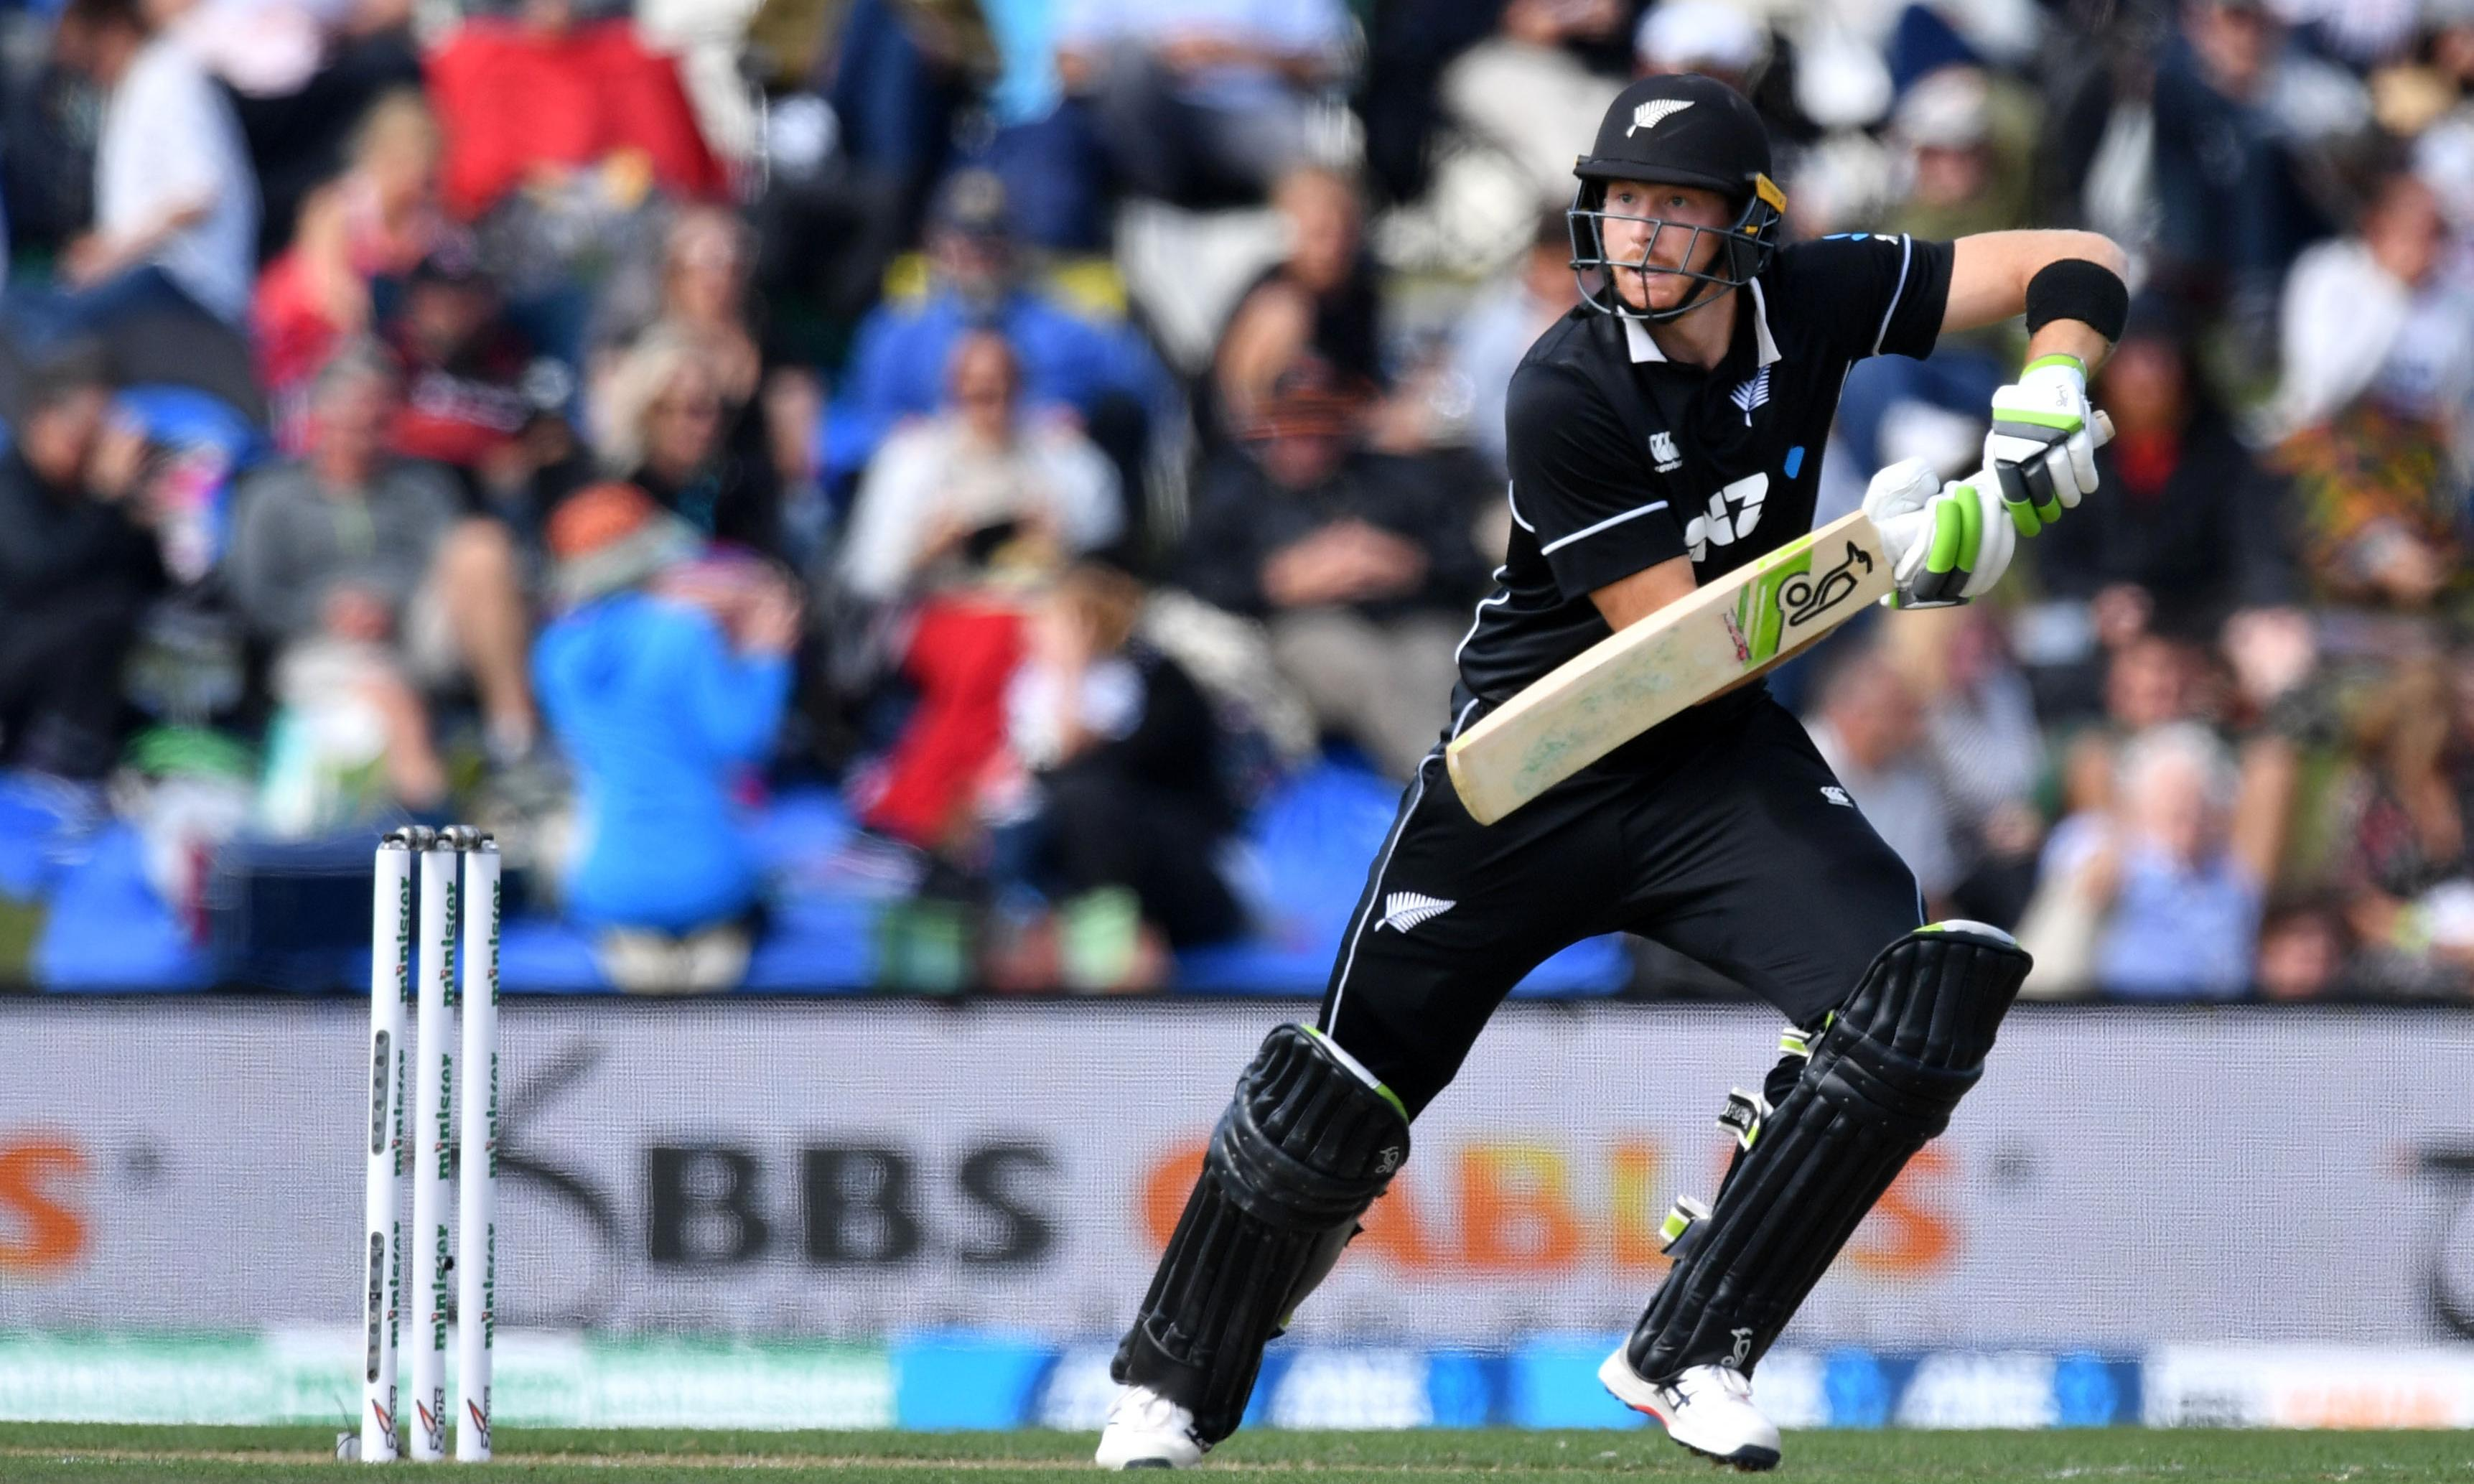 New Zealand Cricket World Cup guide: gameplan, key player and prediction